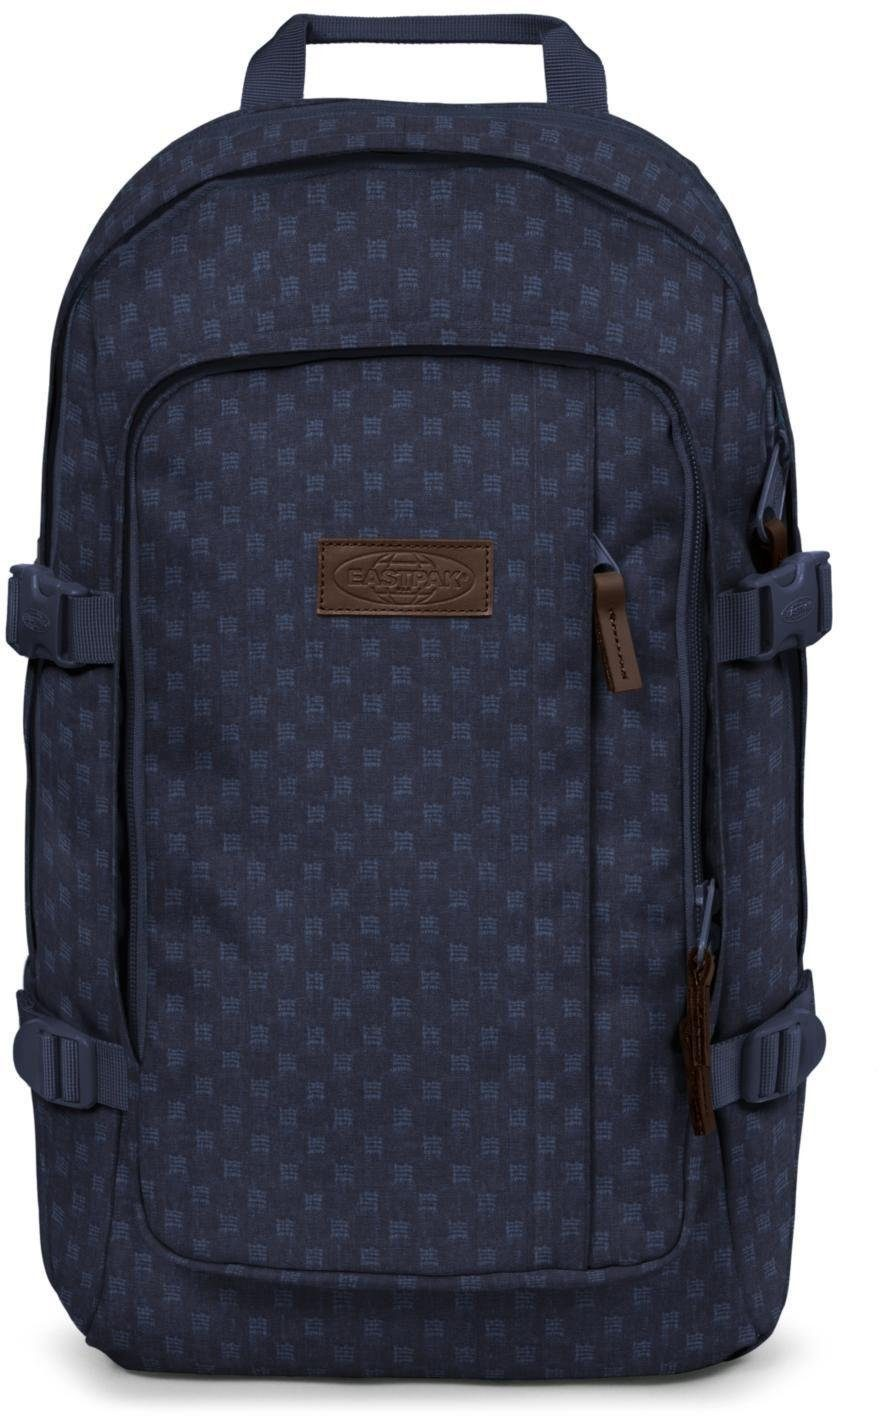 Eastpak Rucksack mit Laptopfach, »EVANZ denim checks«